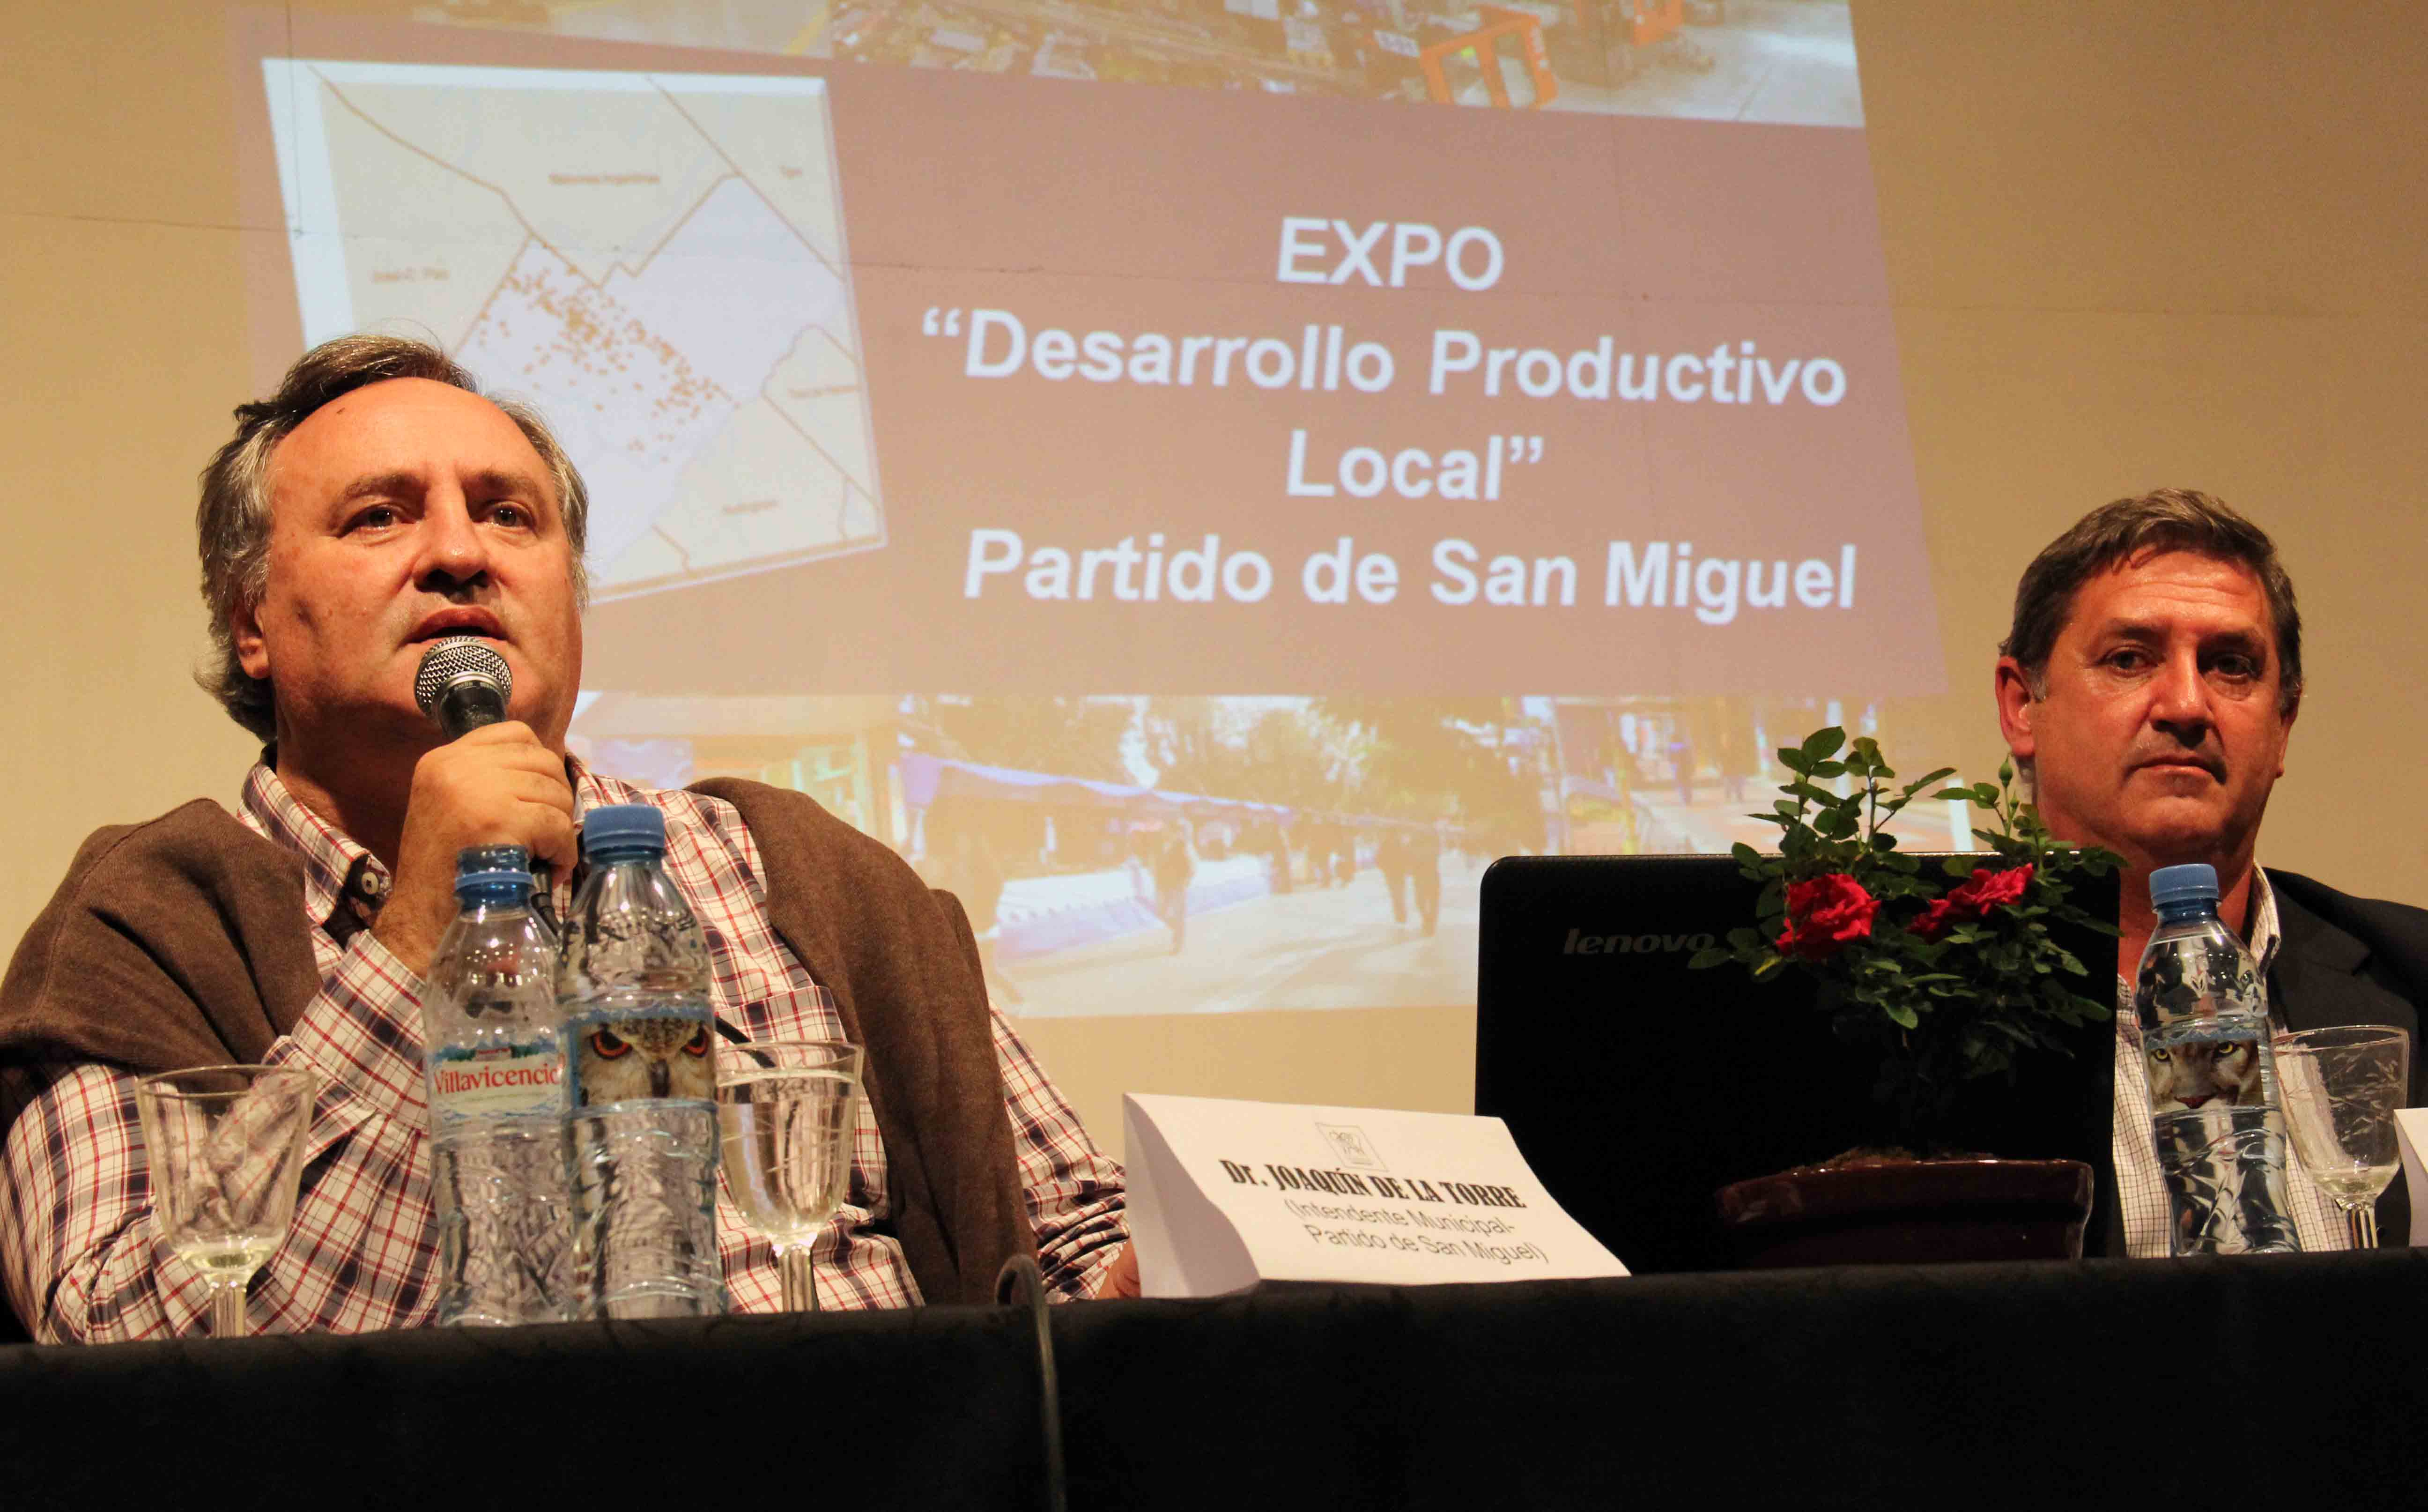 Expo de Desarrollo Local en San Miguel